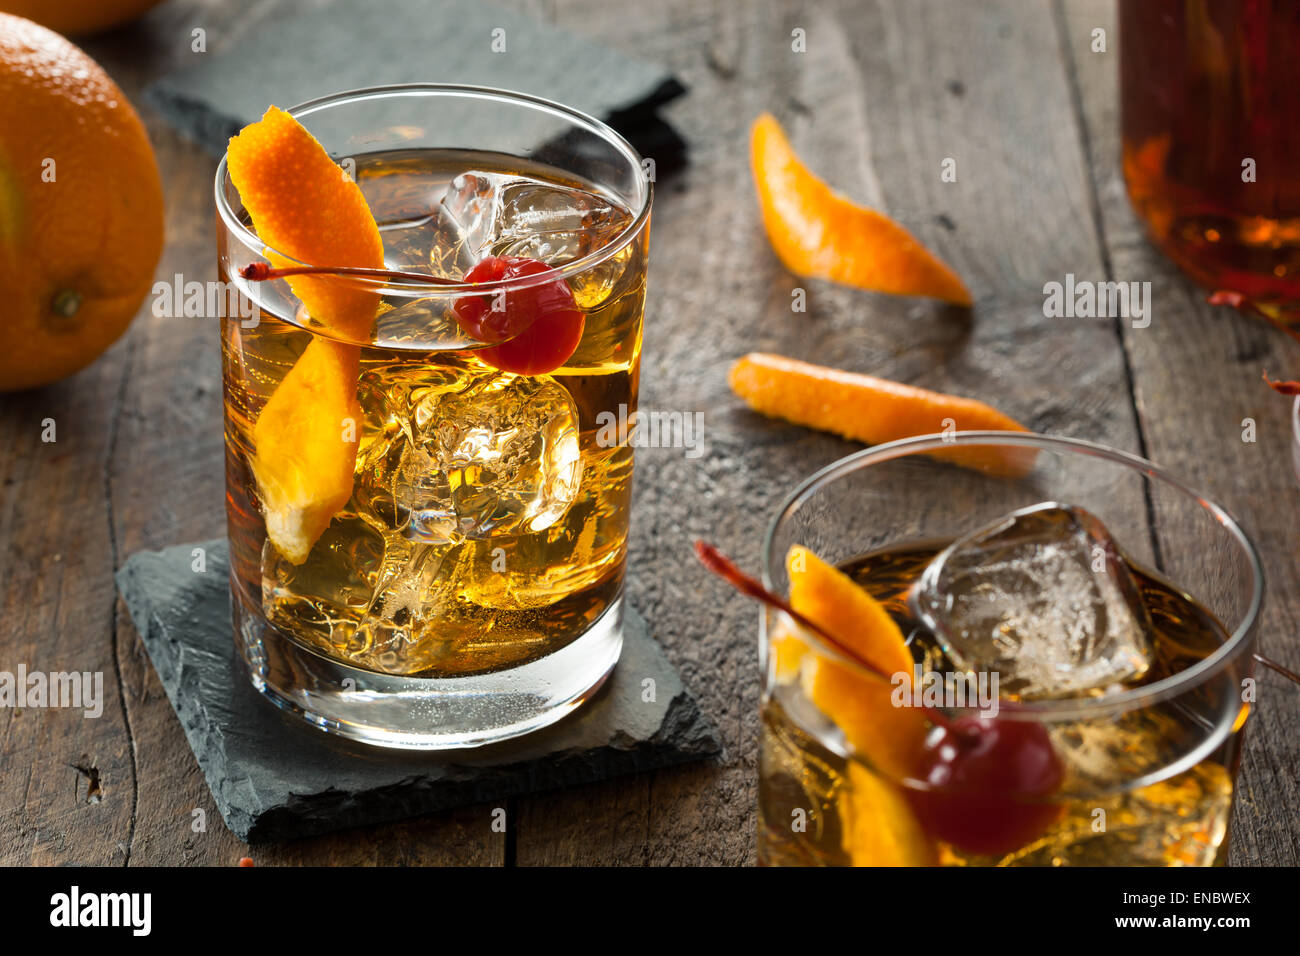 Homemade Old Fashioned Cocktail with Cherries and Orange Peel - Stock Image